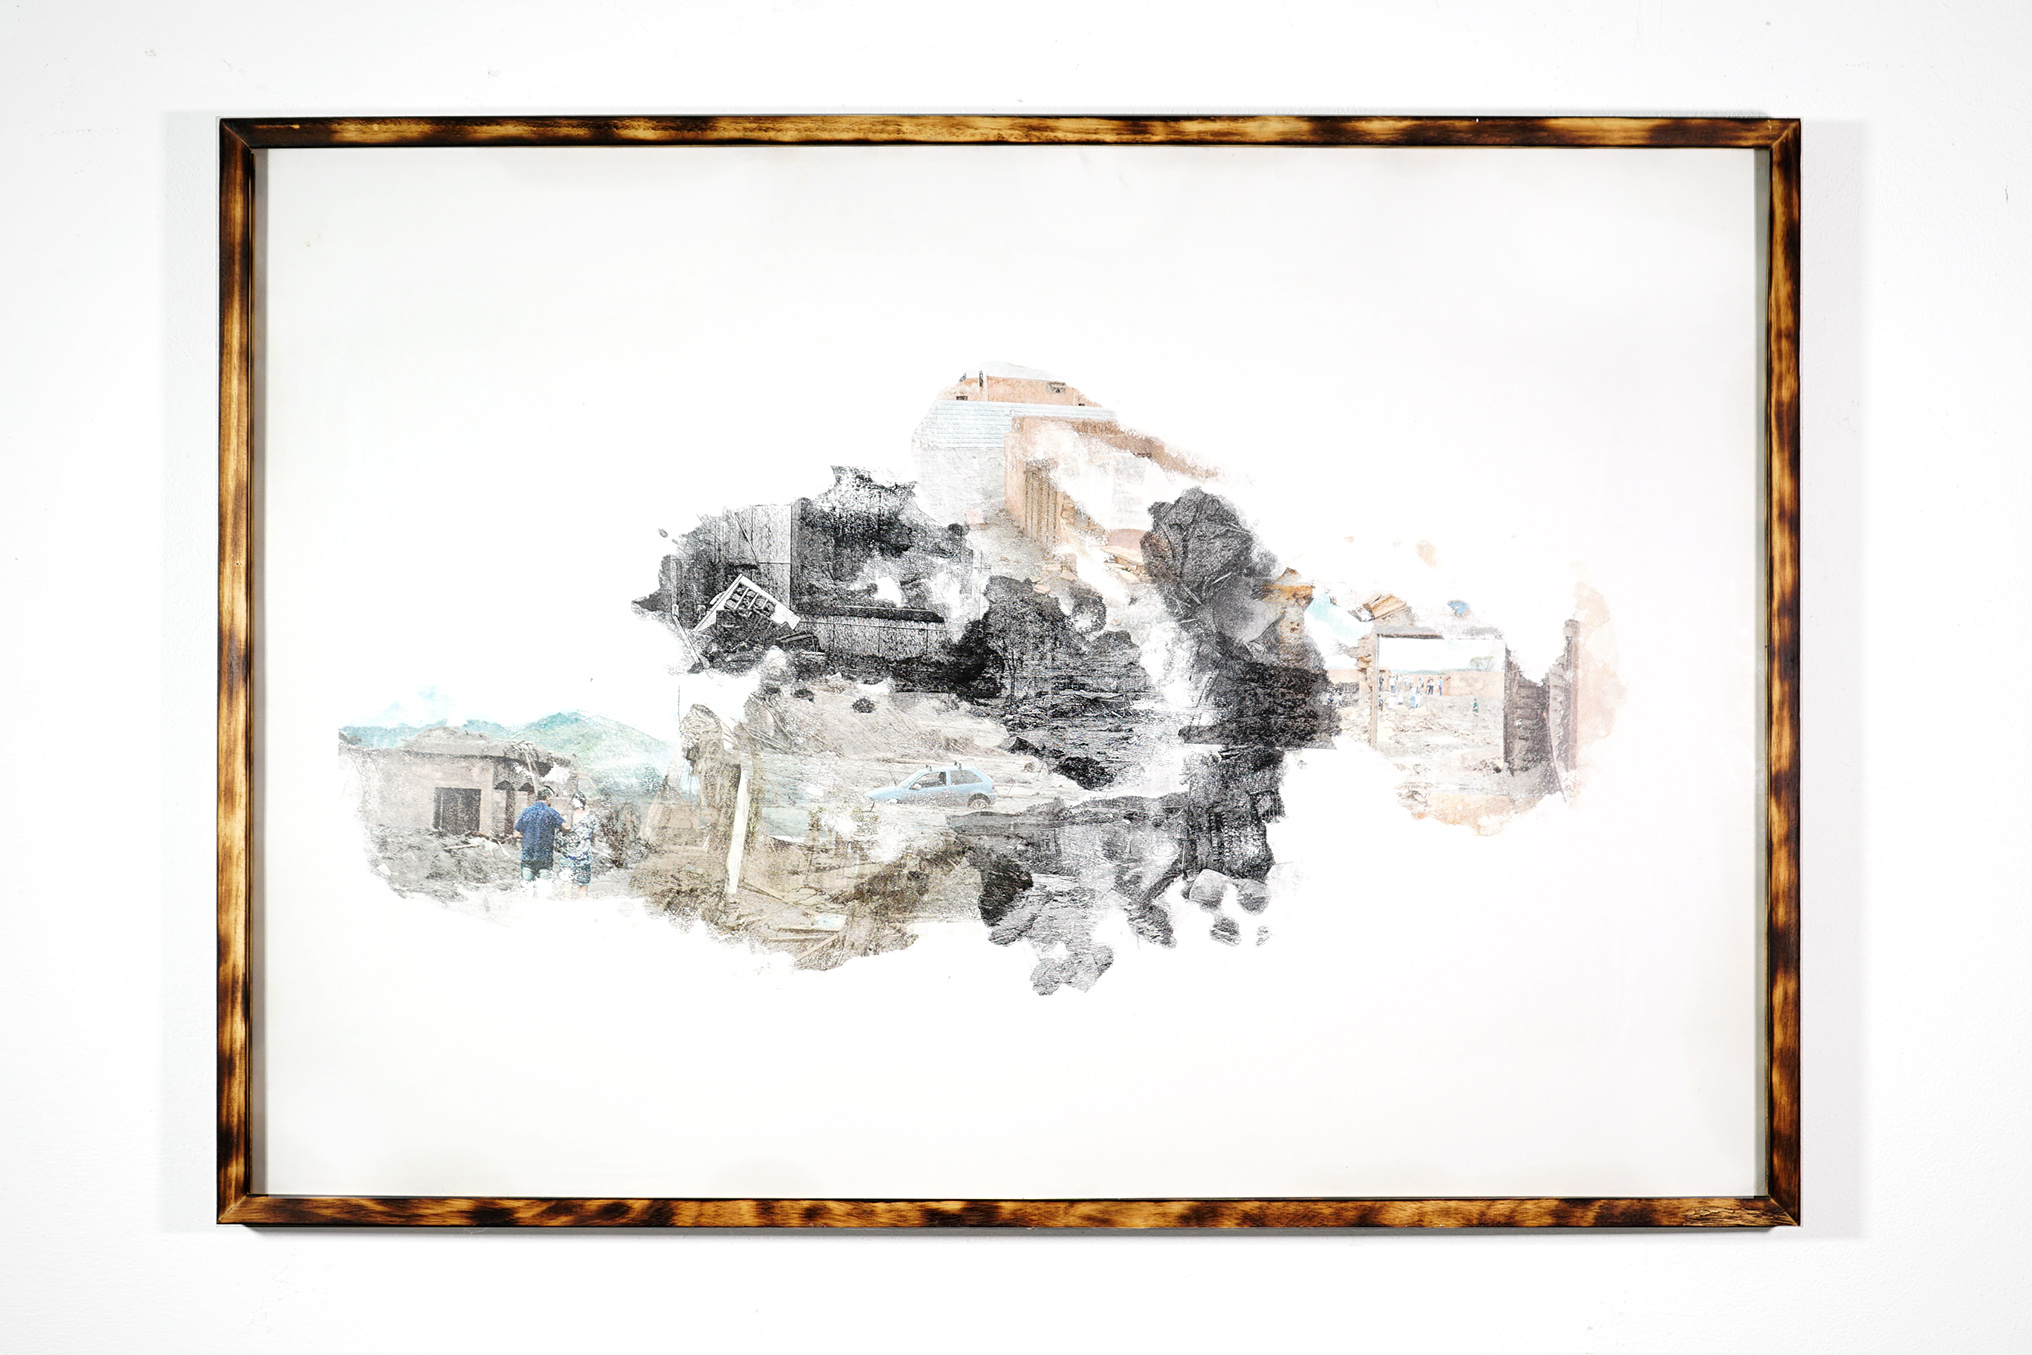 sustainability #002 - 73x103cm with frame